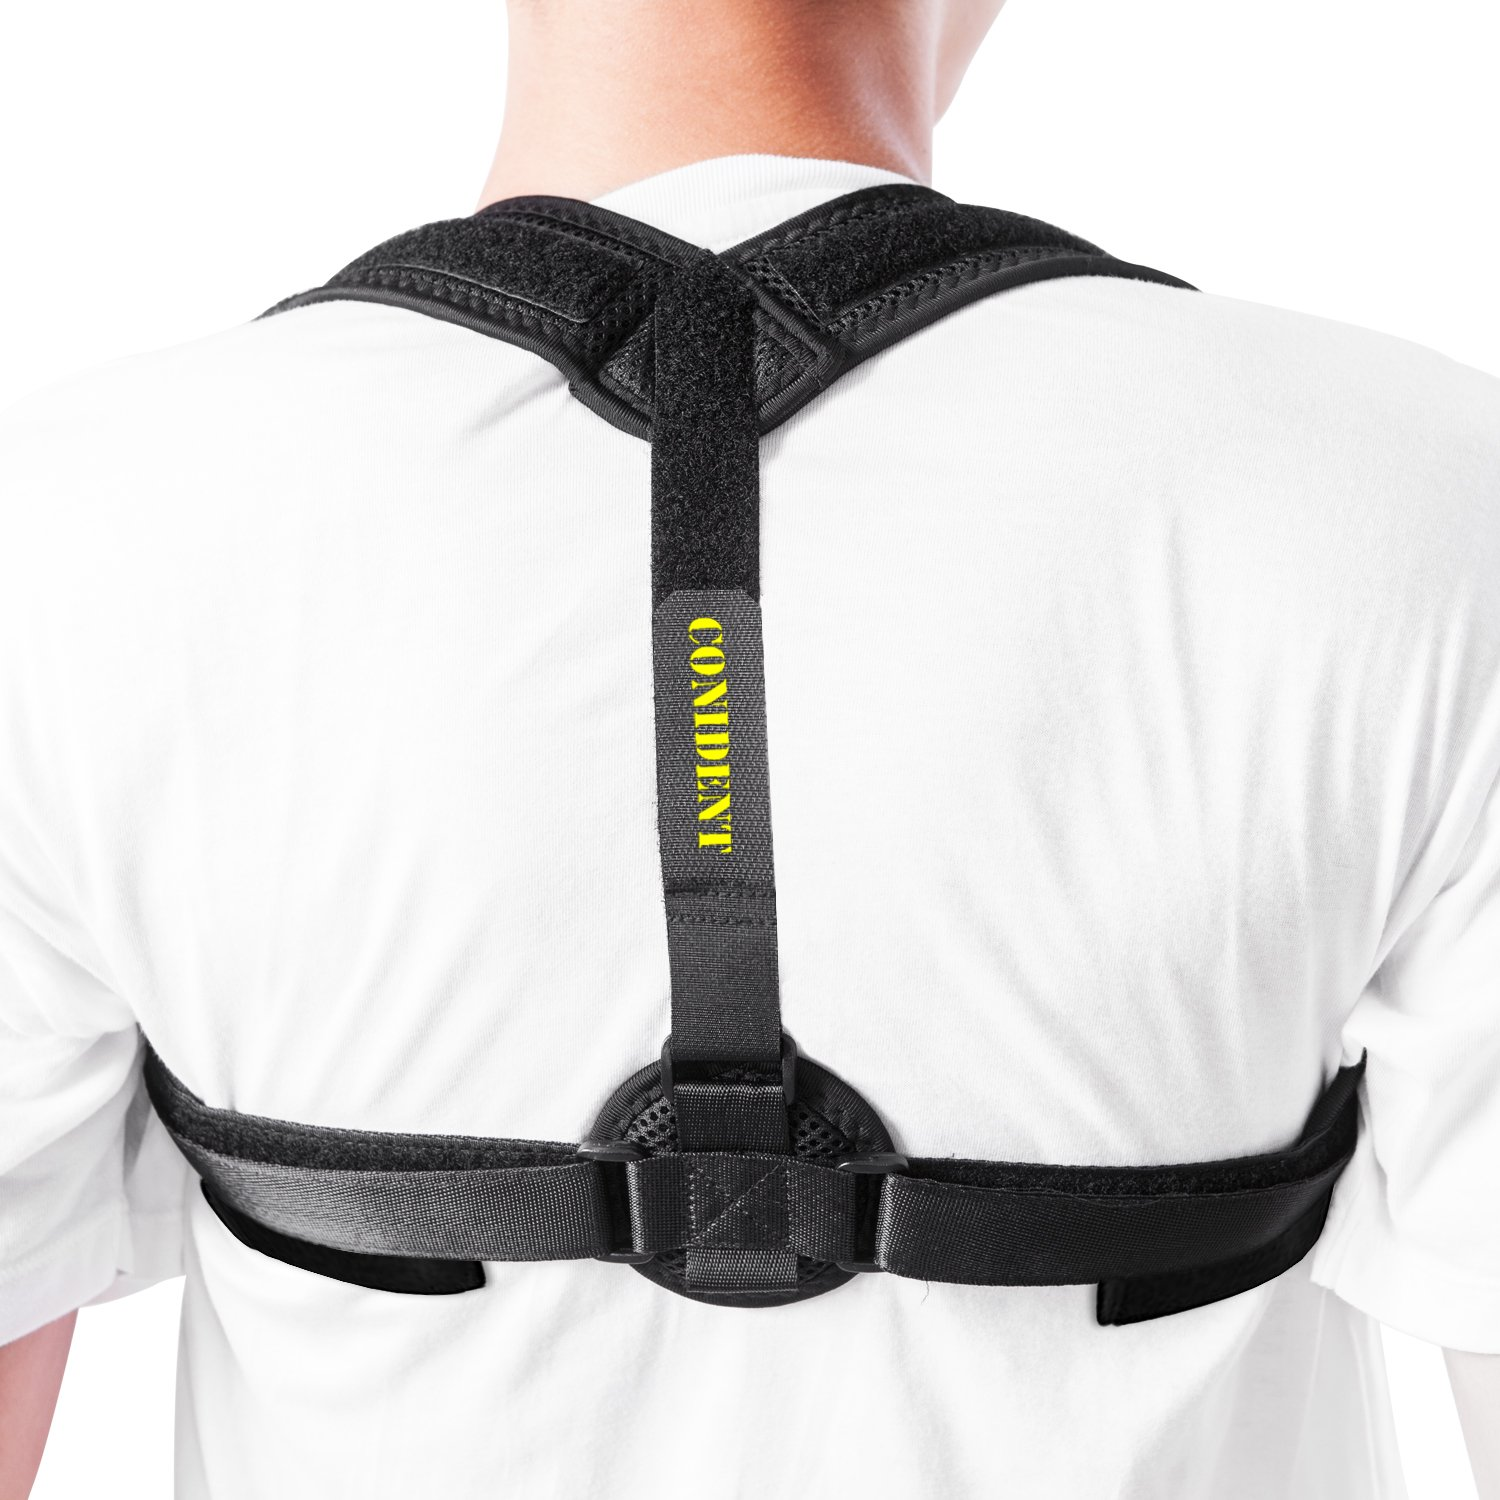 Back Support Brace& Posture Corrector for Women& Men, Clavicle Brace, Thoracic Back Brace& Shoulder Support with Underarm Pad& Carry Bag, Providing Back Pain, Neck Pain, Kyphosis& Hunchback Relief